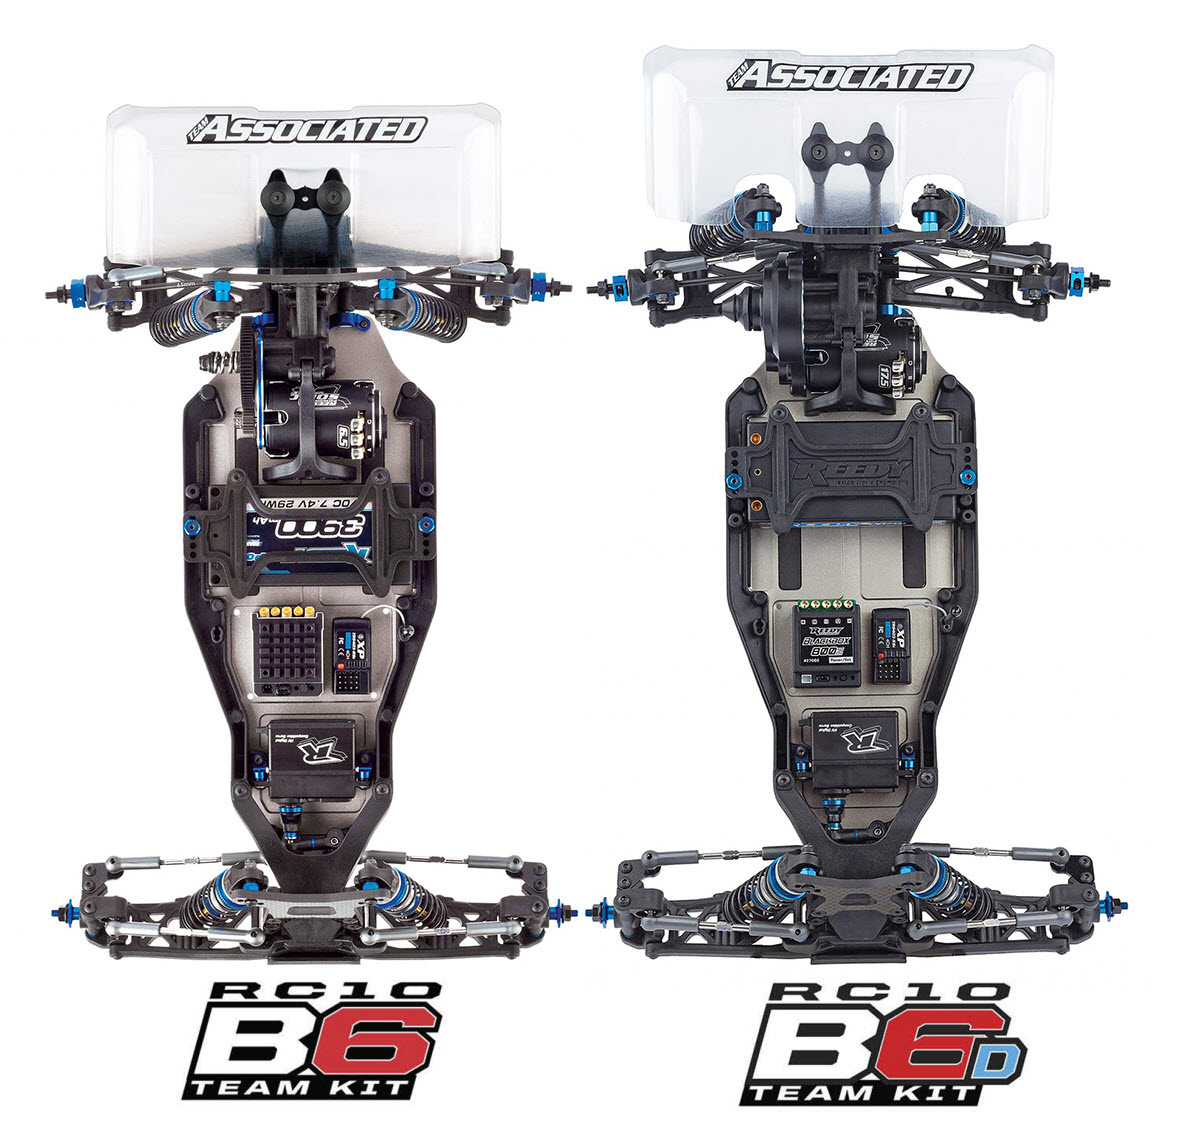 B6 B6D Chassis Compare